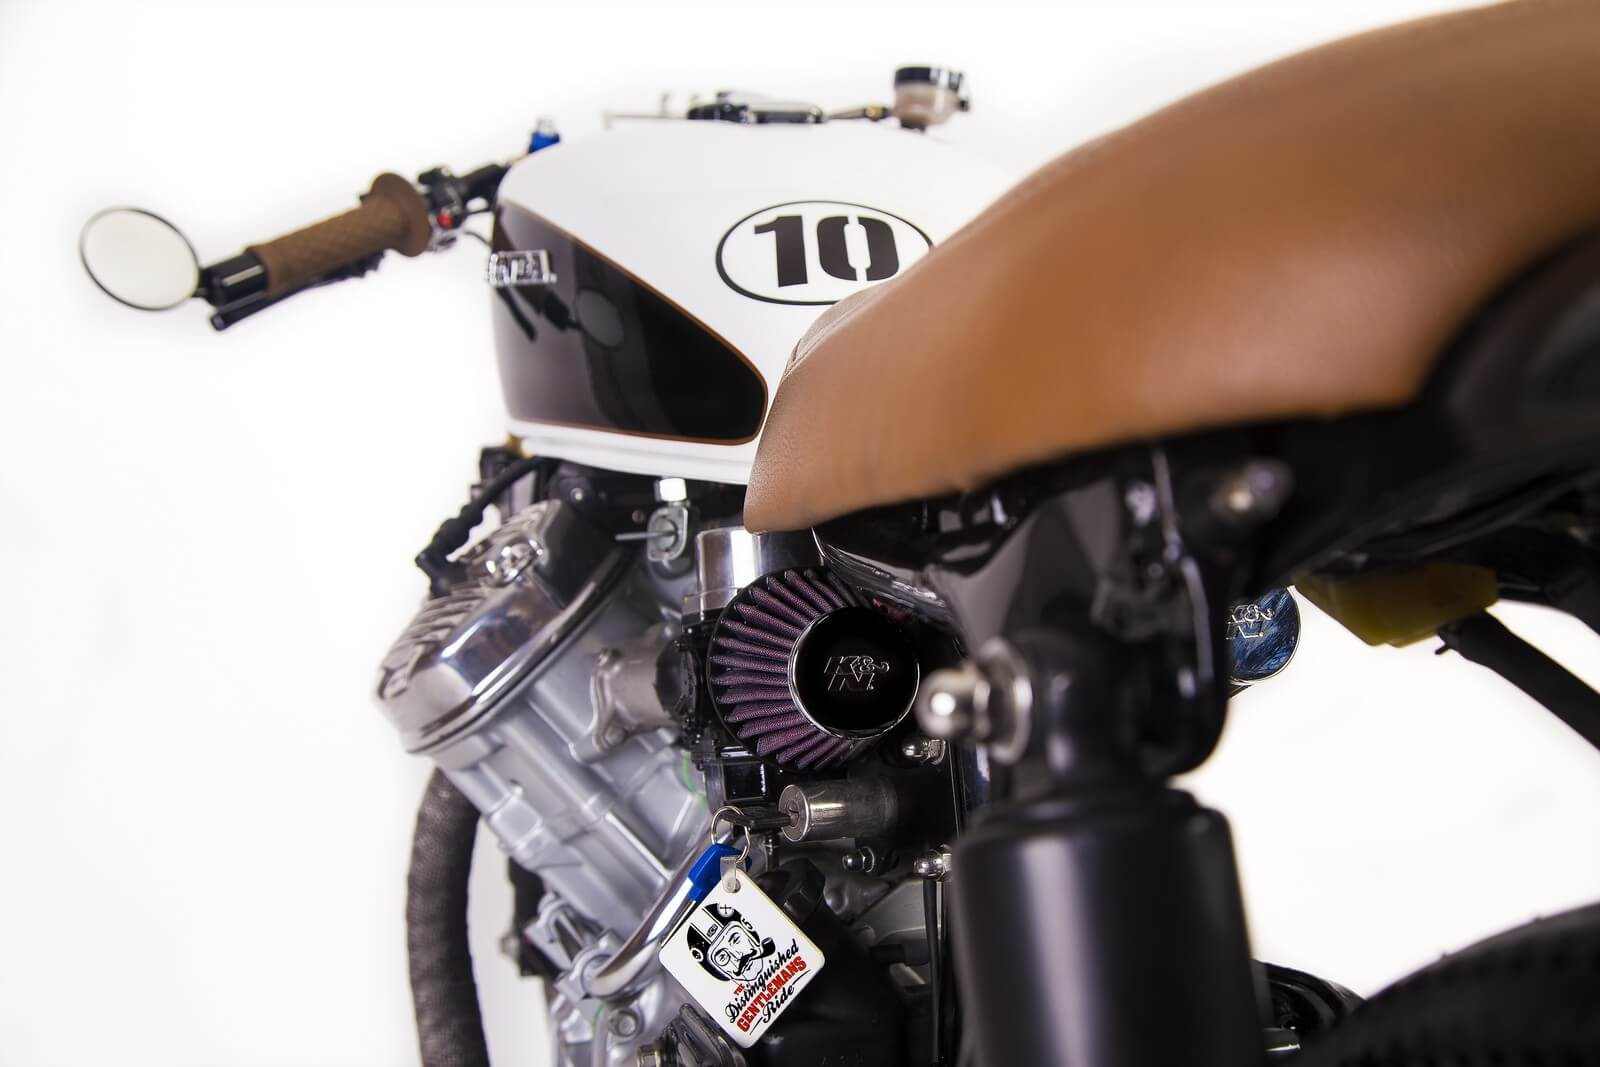 CX500 Caferacer 5